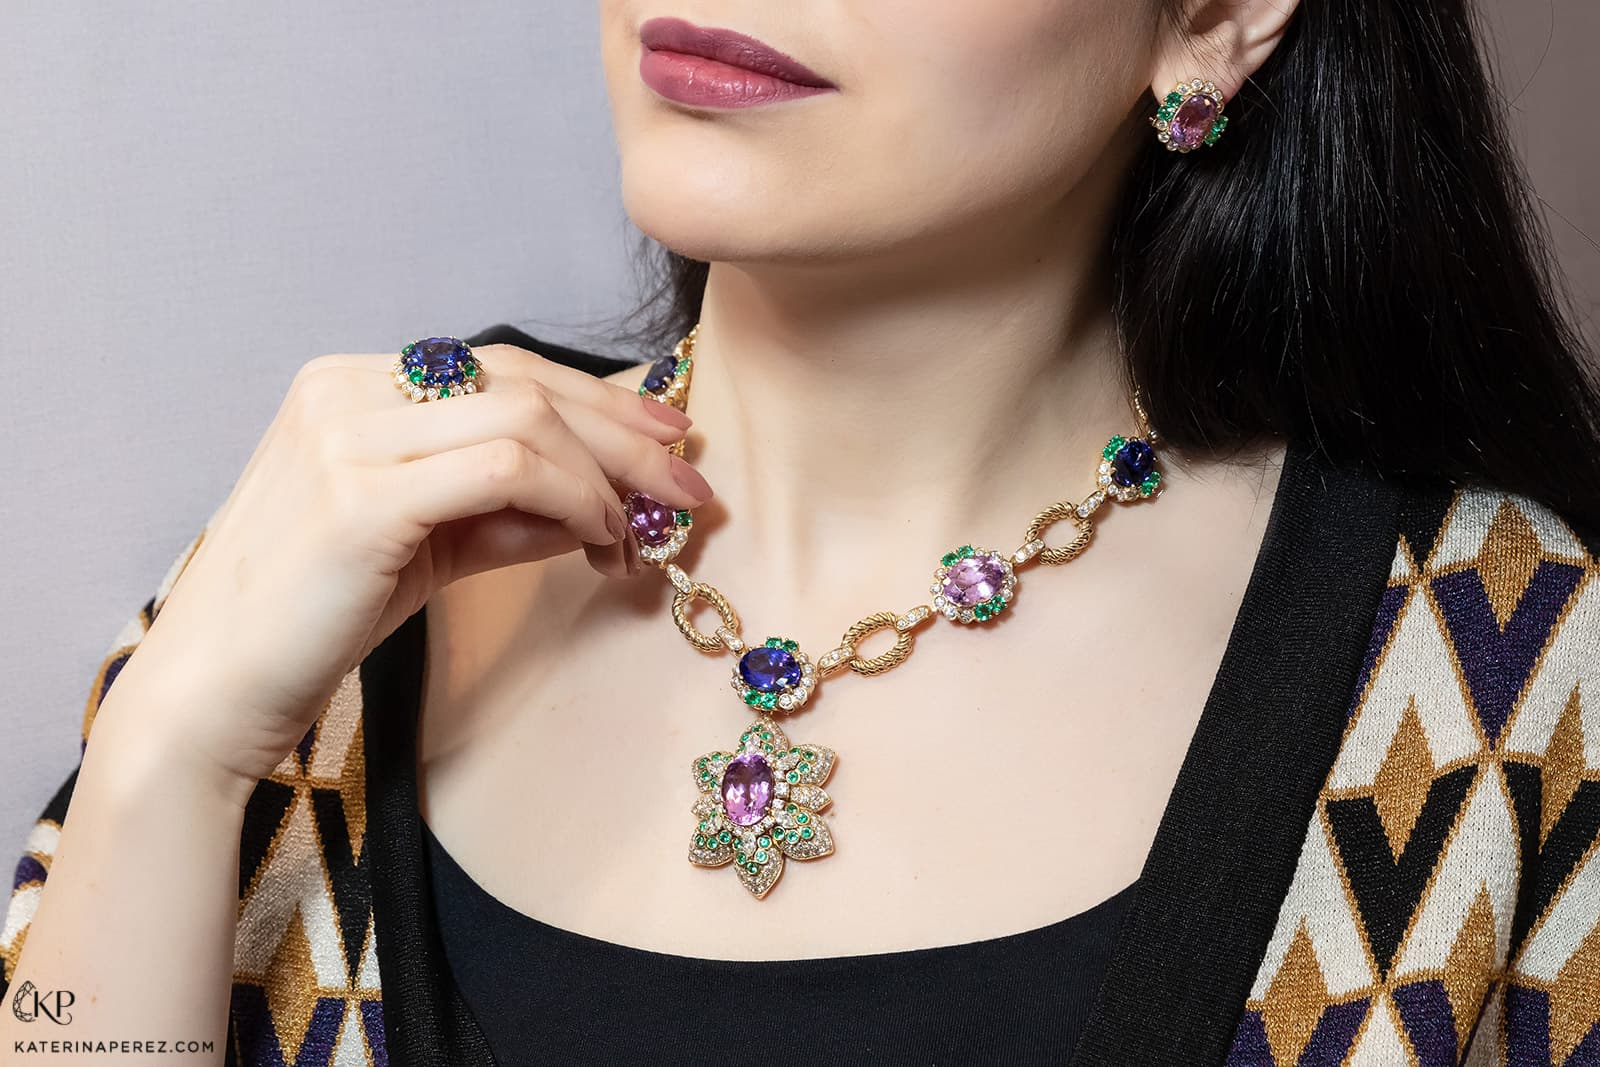 Veschetti 'Ortensia' ring with 7.81ct cushion cut tanzanite, emeralds and diamonds, necklace with an oval 39.05ct kunzite, oval tanzanites totaling 26.62ct, 6.28ct Colombian emeralds, and 14.20ct diamonds, and earrings with 1.38ct oval kunzites, emeralds and diamonds, all in 18k yellow gold